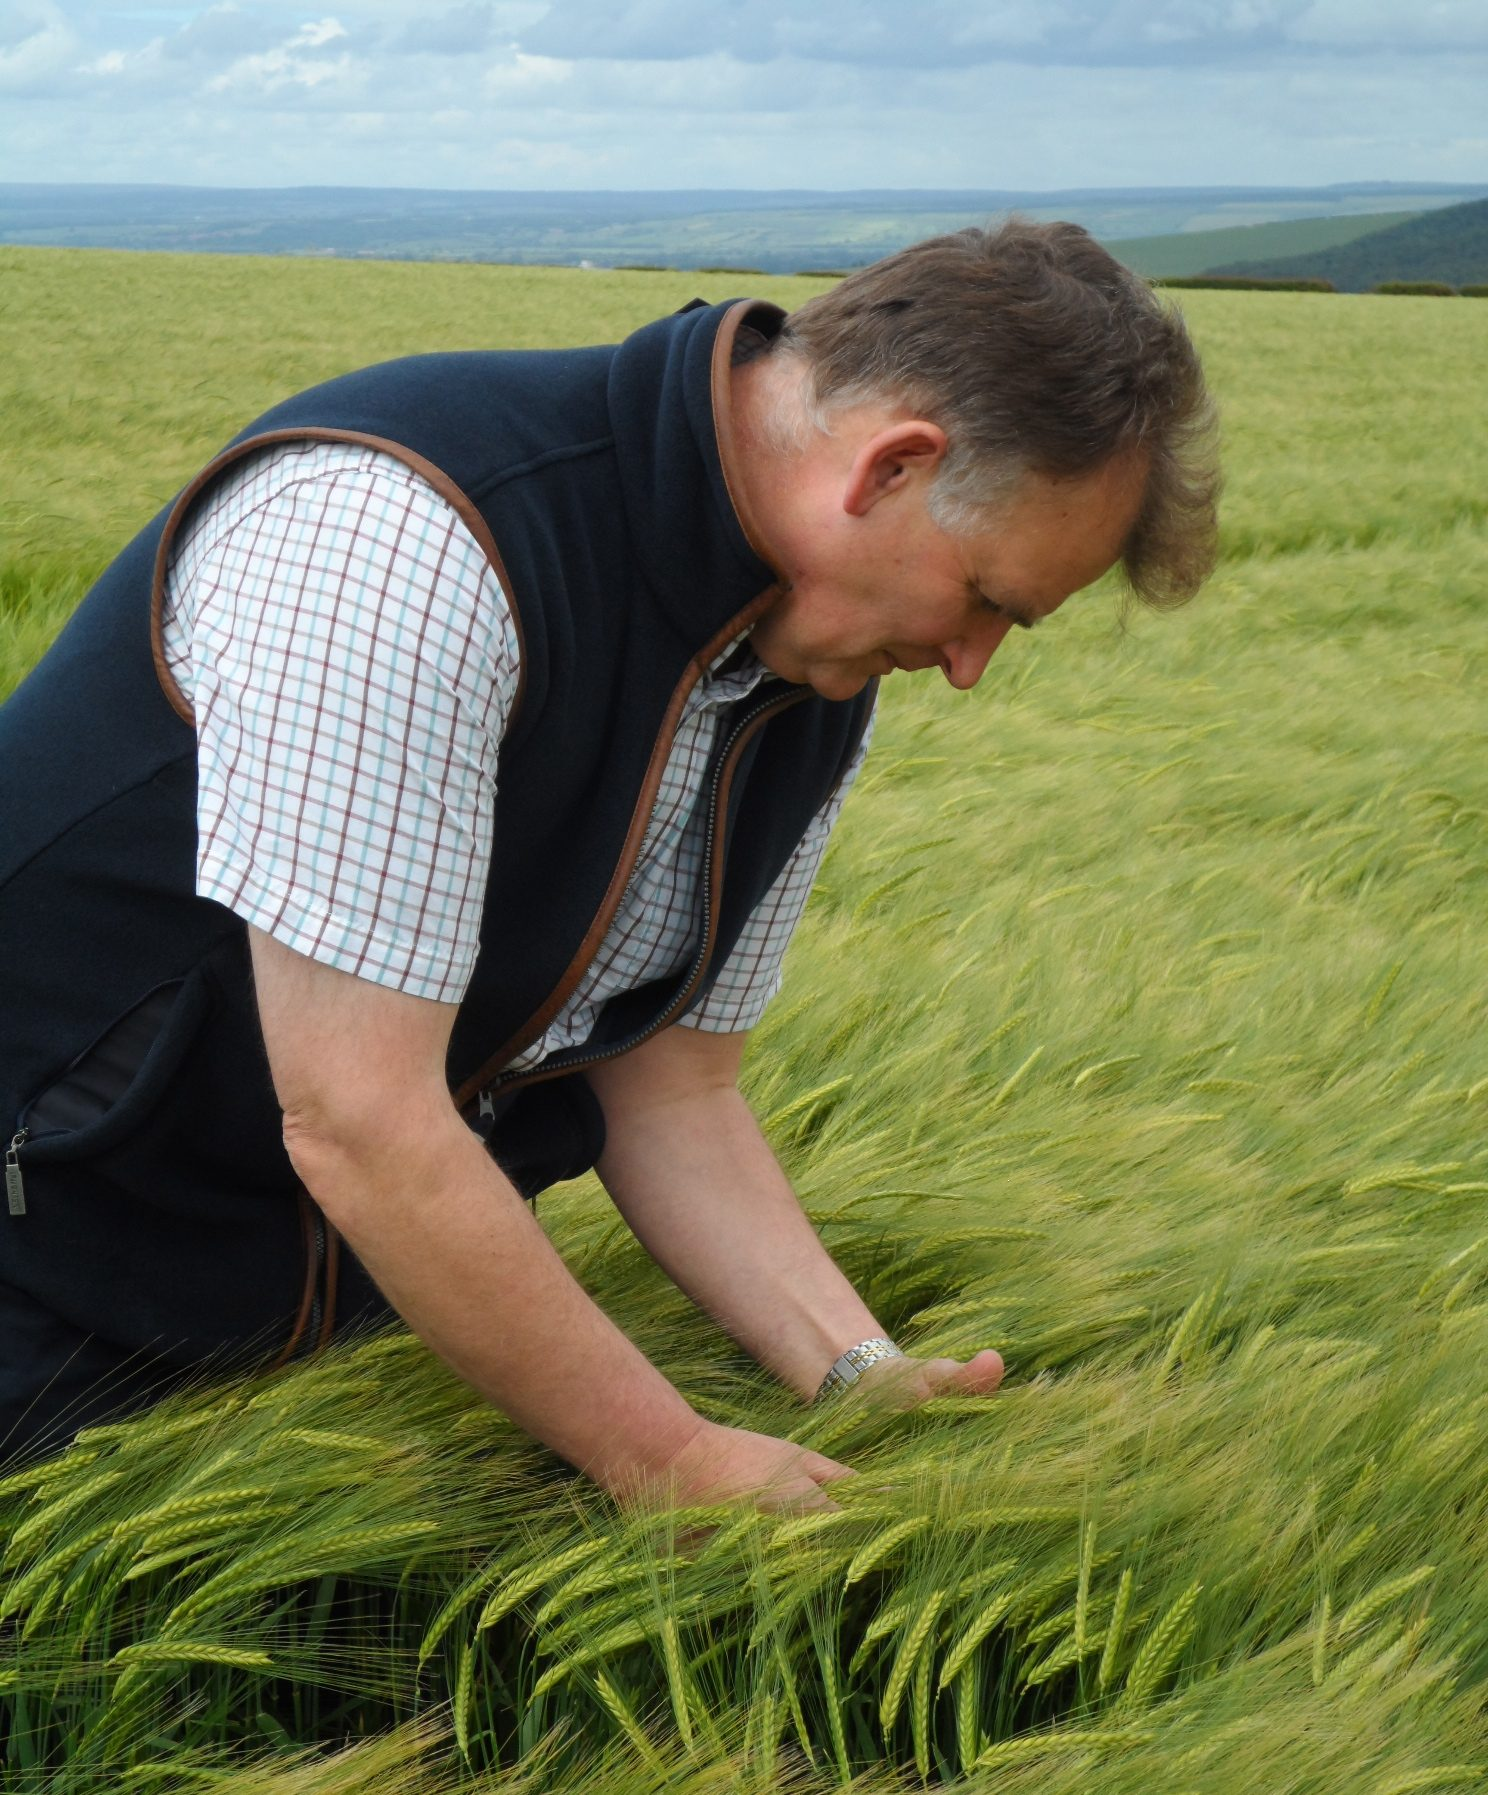 HISTORIC TIME FOR NFU TO MAKE FARMING'S VOICE HEARD